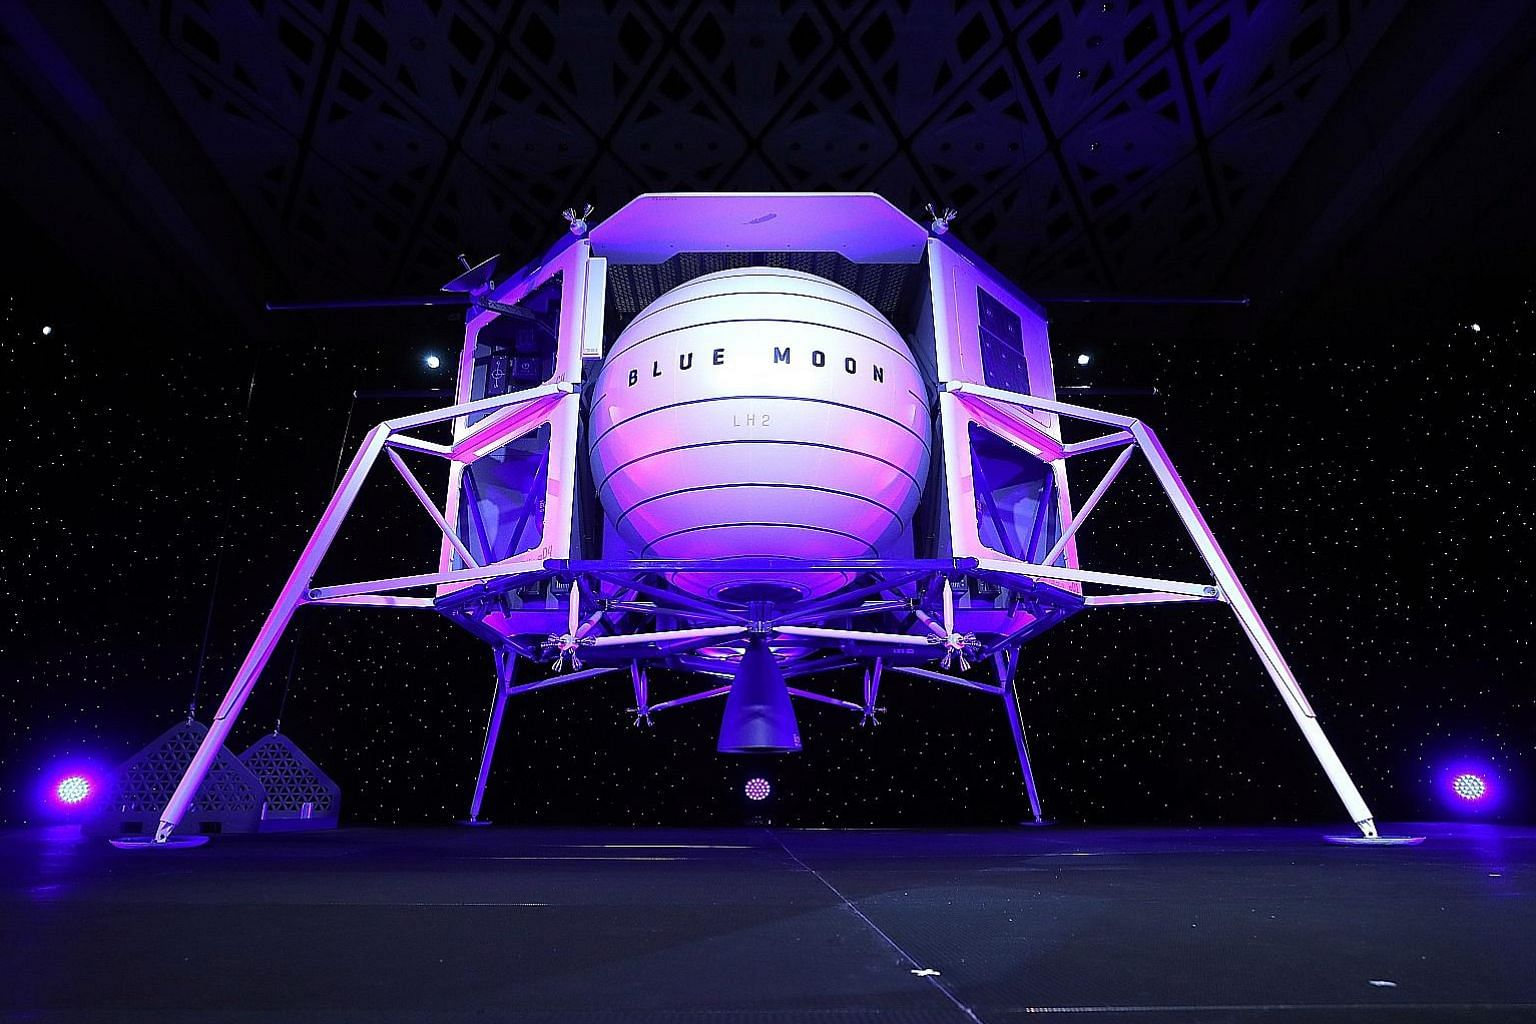 A new lunar landing module called Blue Moon being unveiled at the Washington Convention Centre in May. Mr Jeff Bezos, owner of Blue Origin, said the module will be used to land humans on the Moon. Nasa rolling back the Artemis launch tower from Pad 3